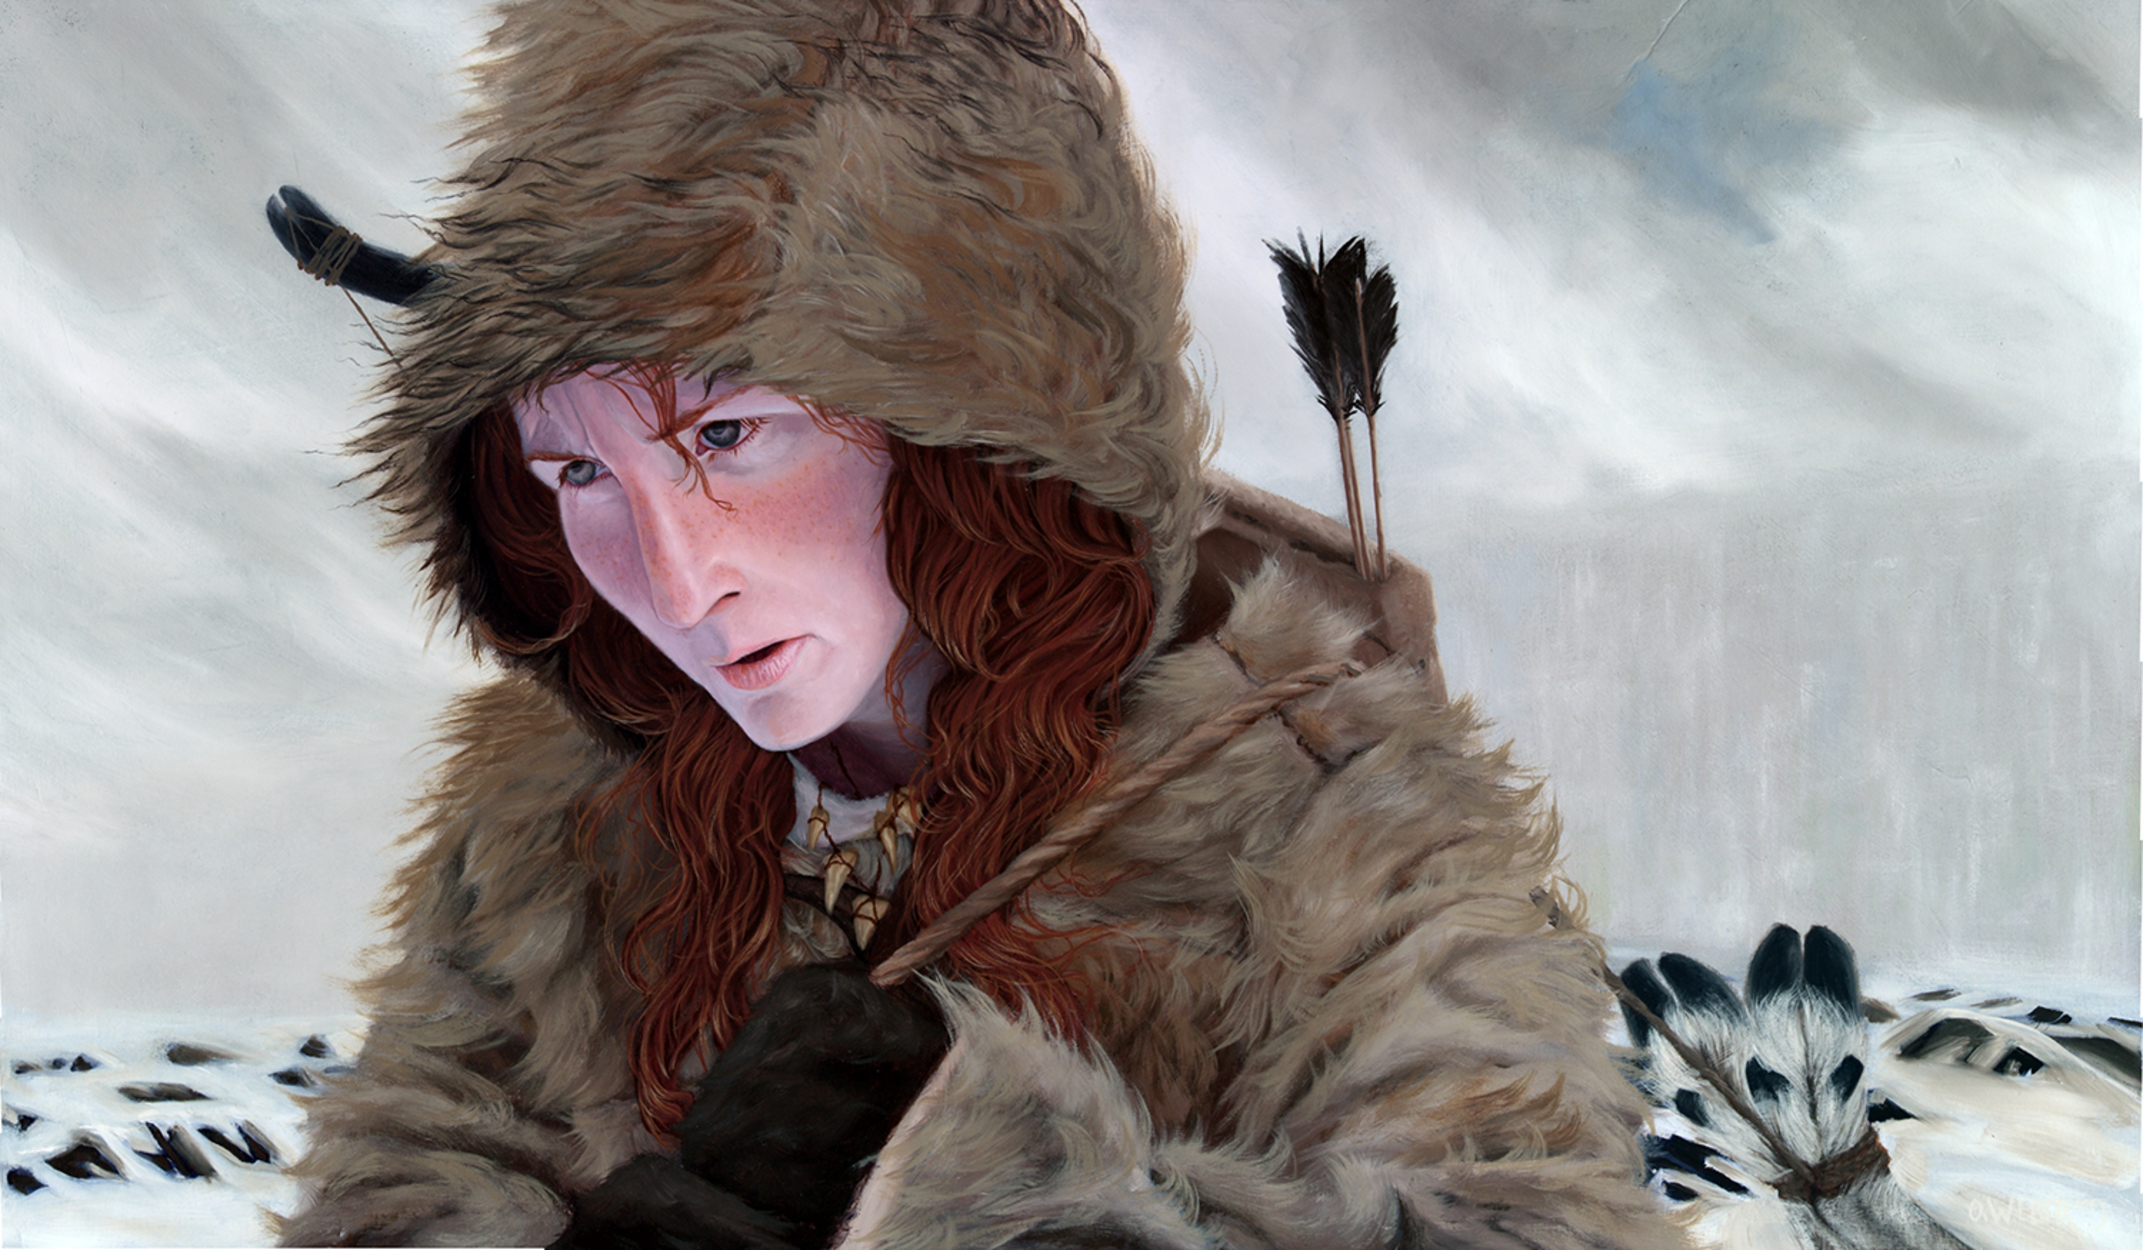 Kissed By Fire Artwork by Owen Weber